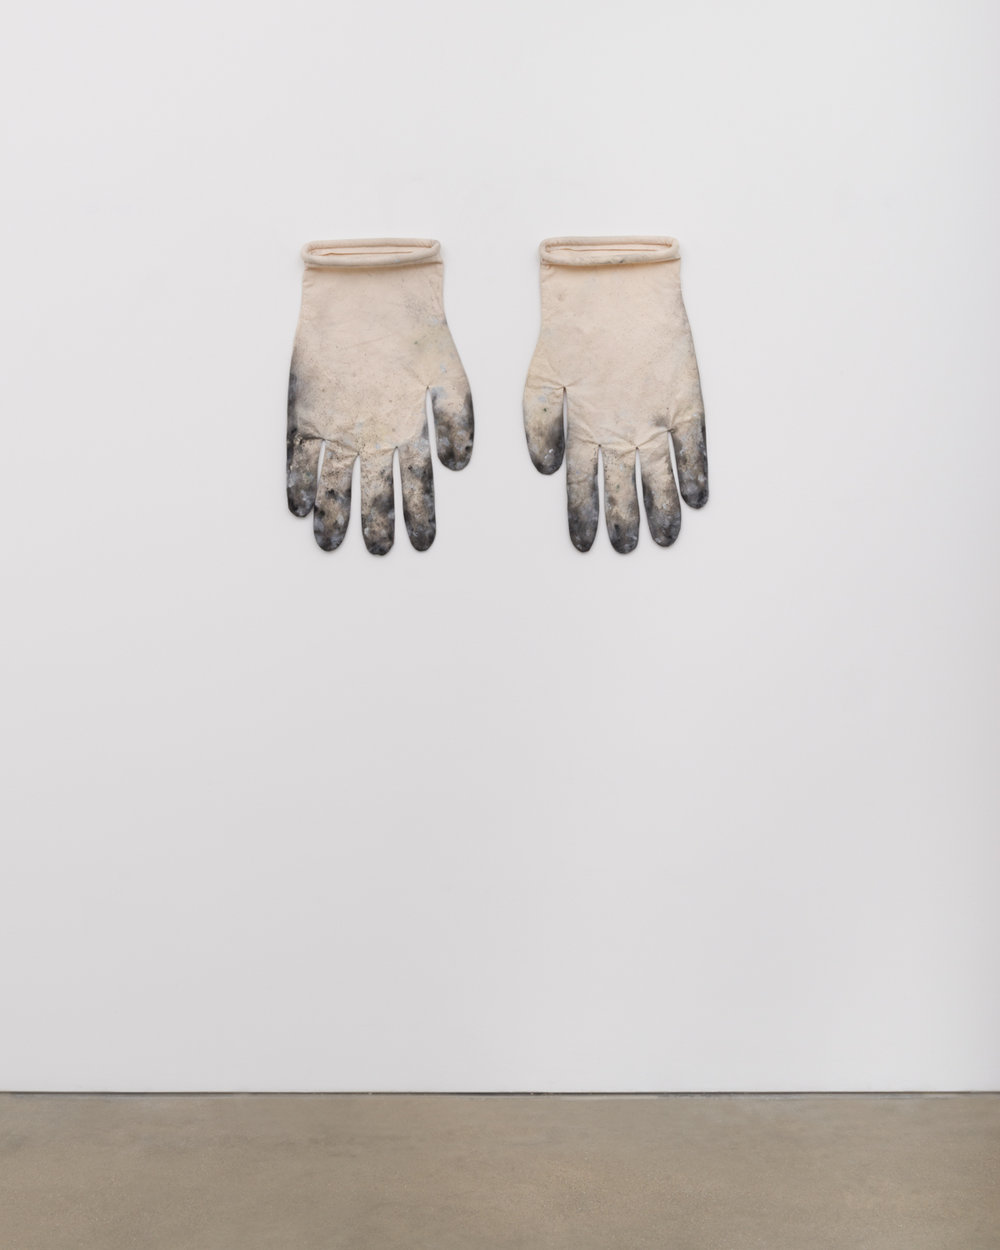 Amanda Ross-Ho  Untitled Prototype #3 (DIRTY GLOVES)  2017 Acrylic on canvas, cotton piping, and thread 24h x 15w in, each ARH147